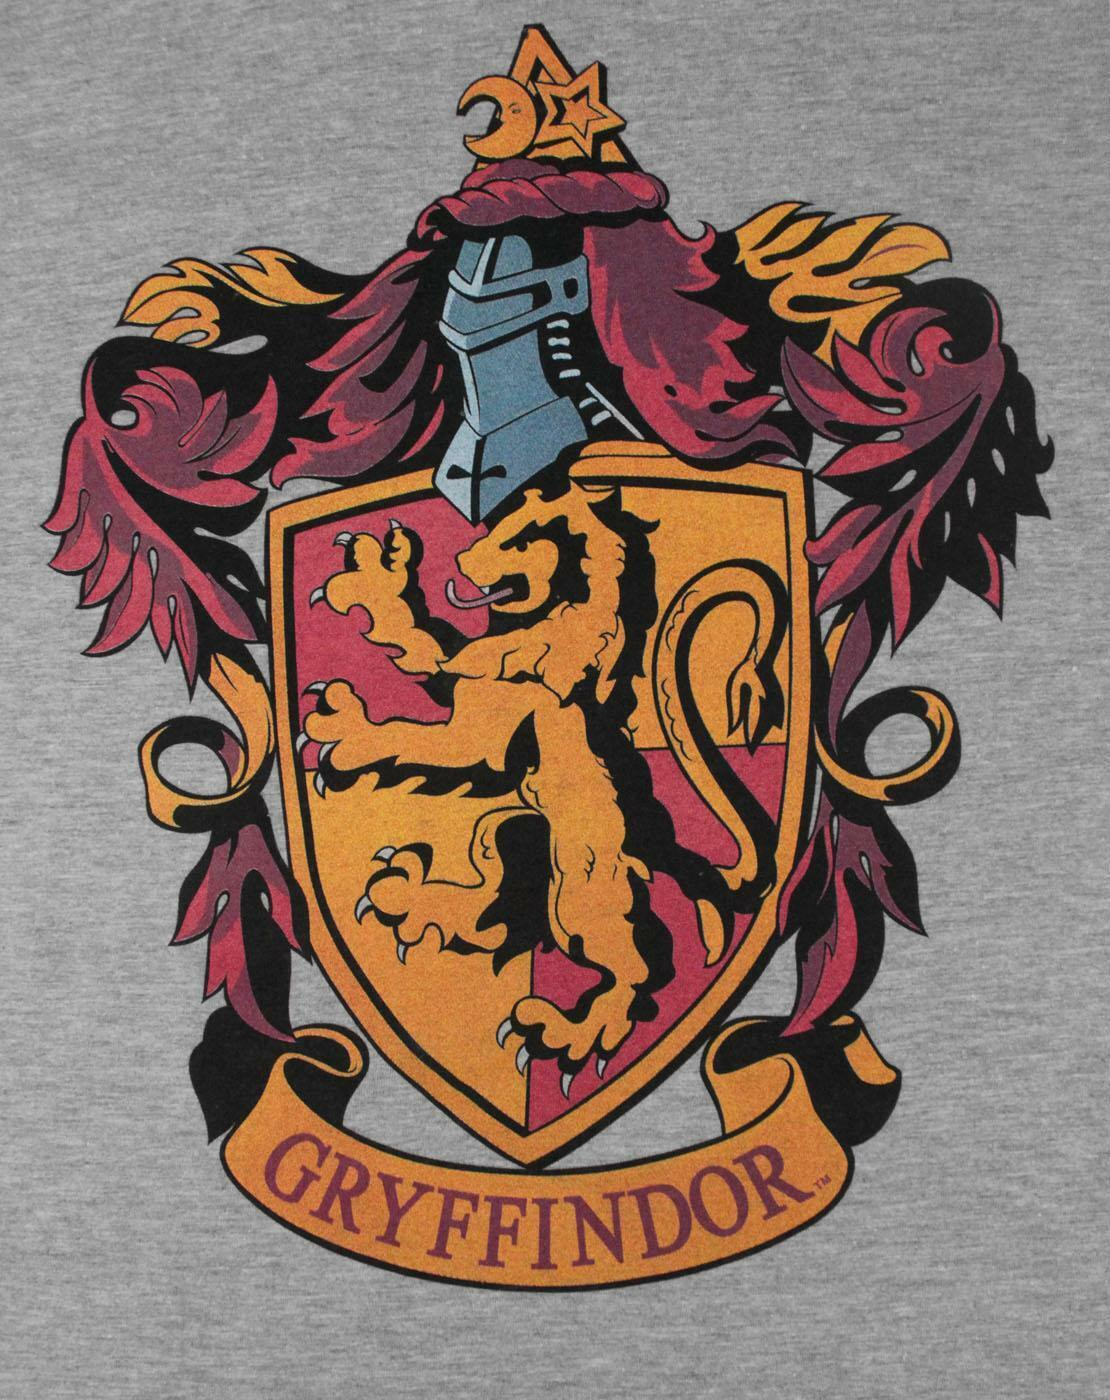 Harry-Potter-Gryffindor-Women-039-s-T-Shirt thumbnail 6